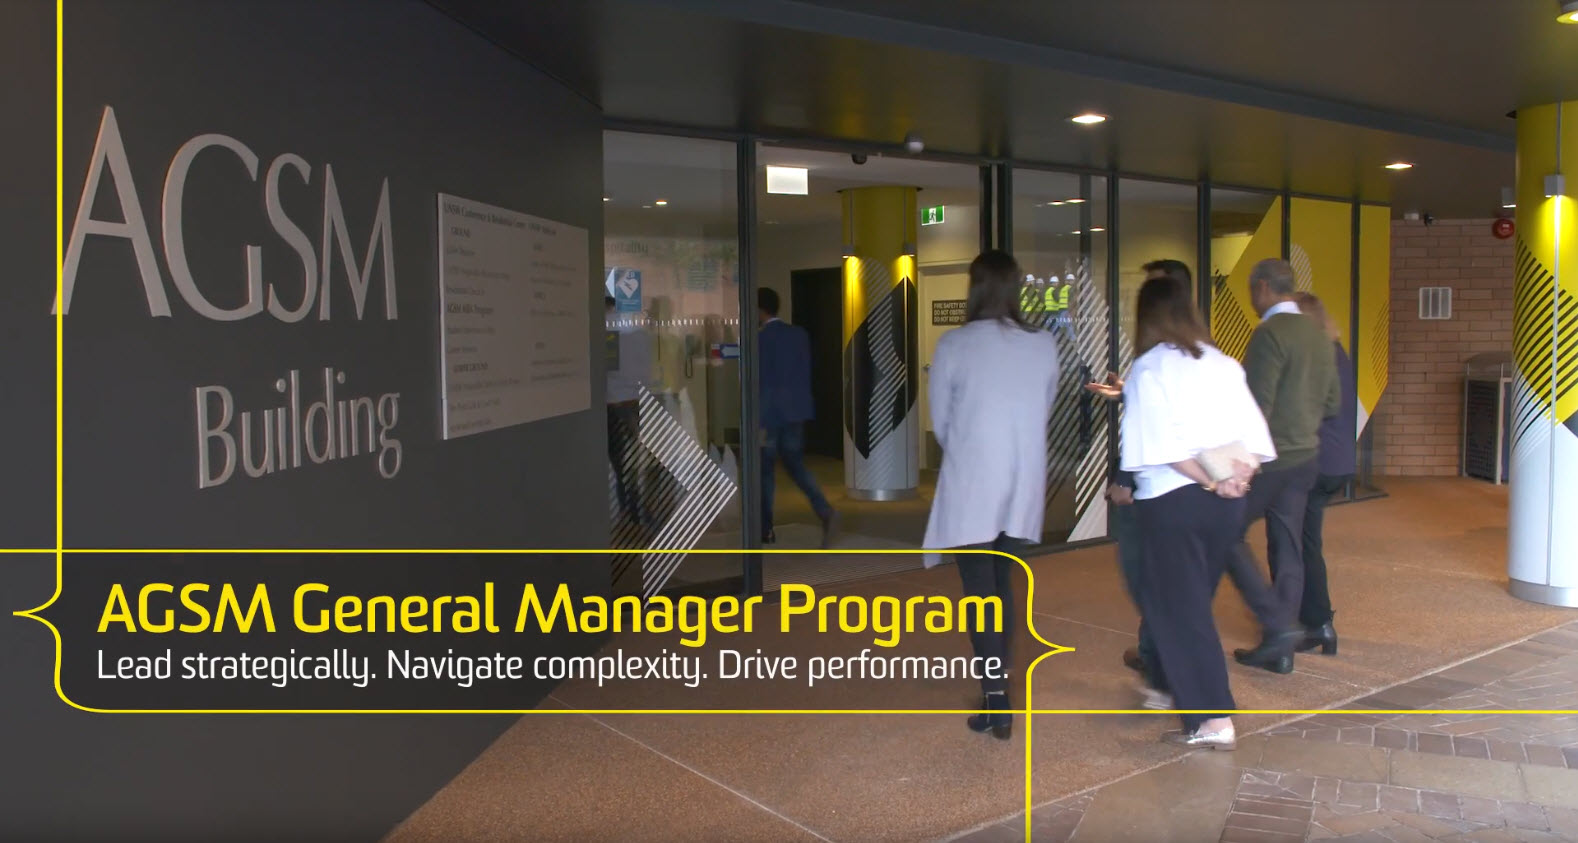 The AGSM General Manager program